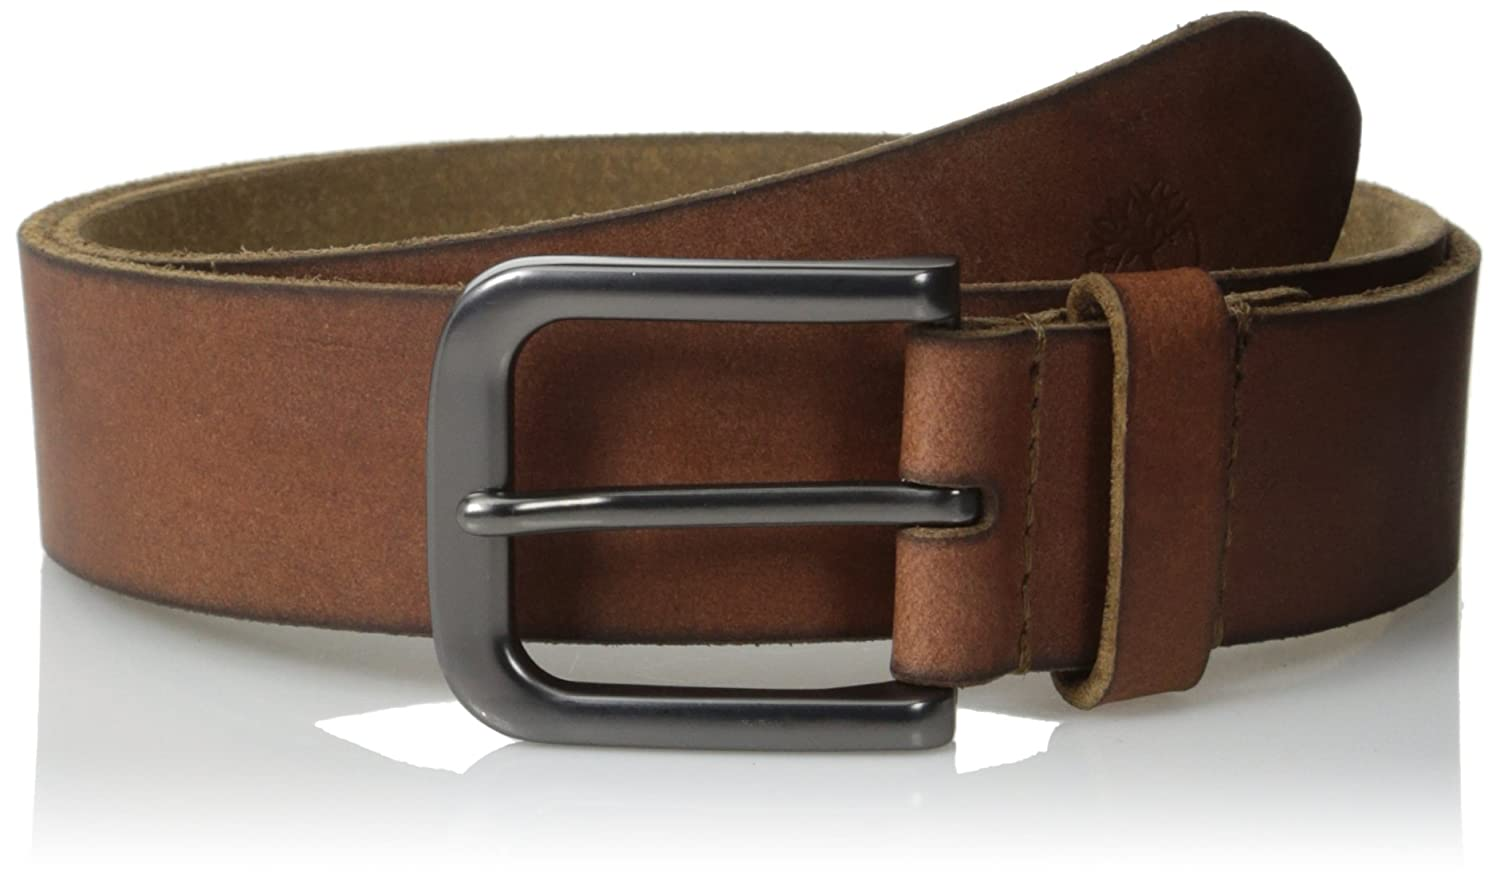 987abc83b026 Timberland mens classic jean belt at amazon mens clothing store jpg  1500x881 Brown leather belt